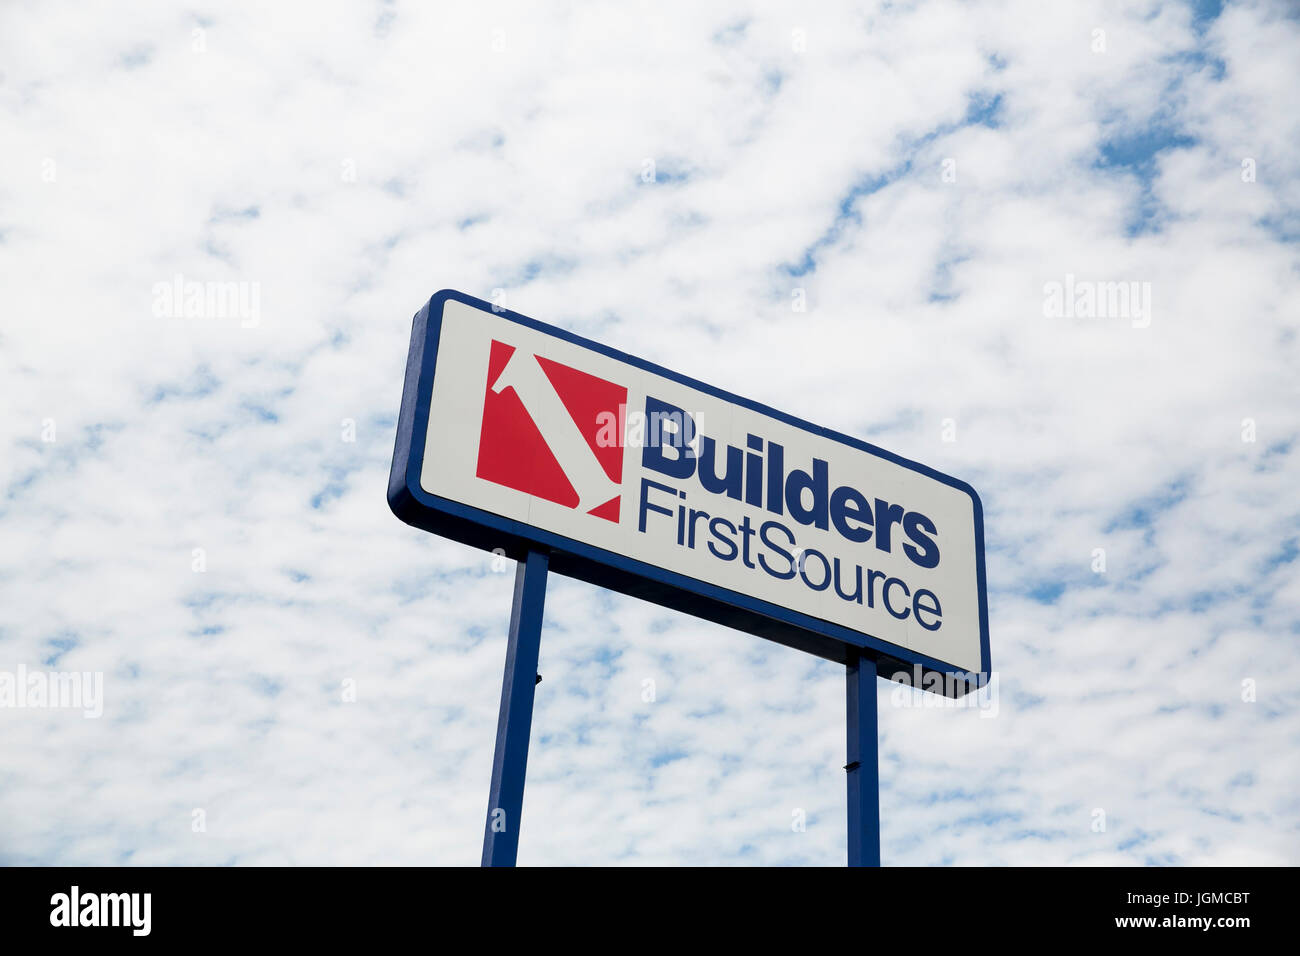 A logo sign outside of a facility occupied by Builders